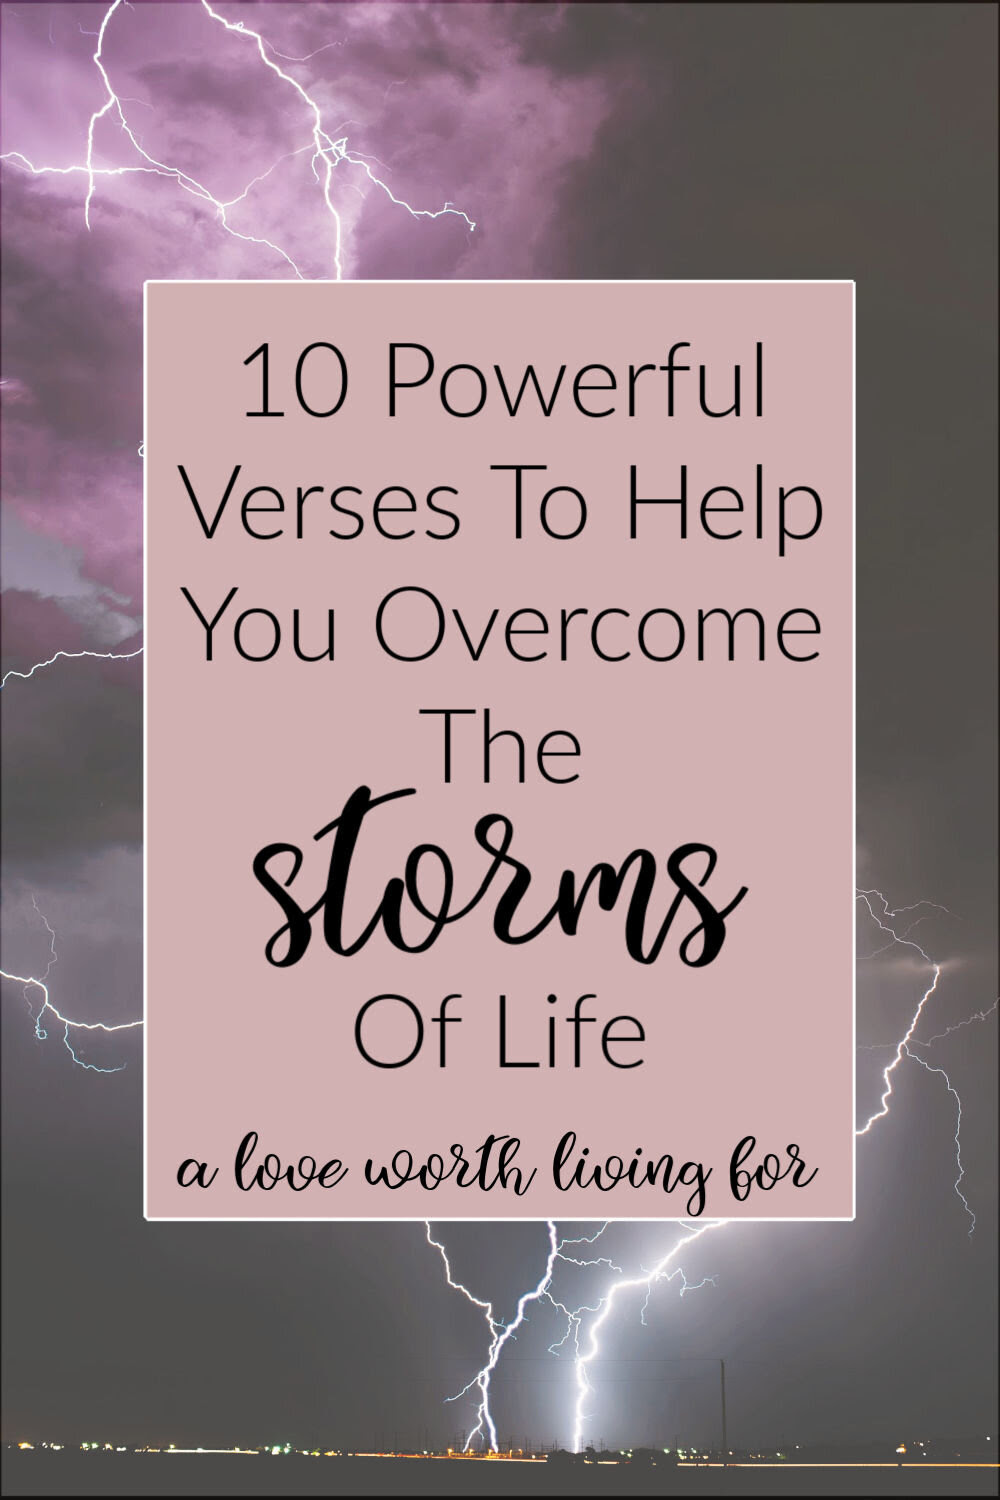 10 Scriptures To Help You Survive The Storms Of Life A Love Worth Living For